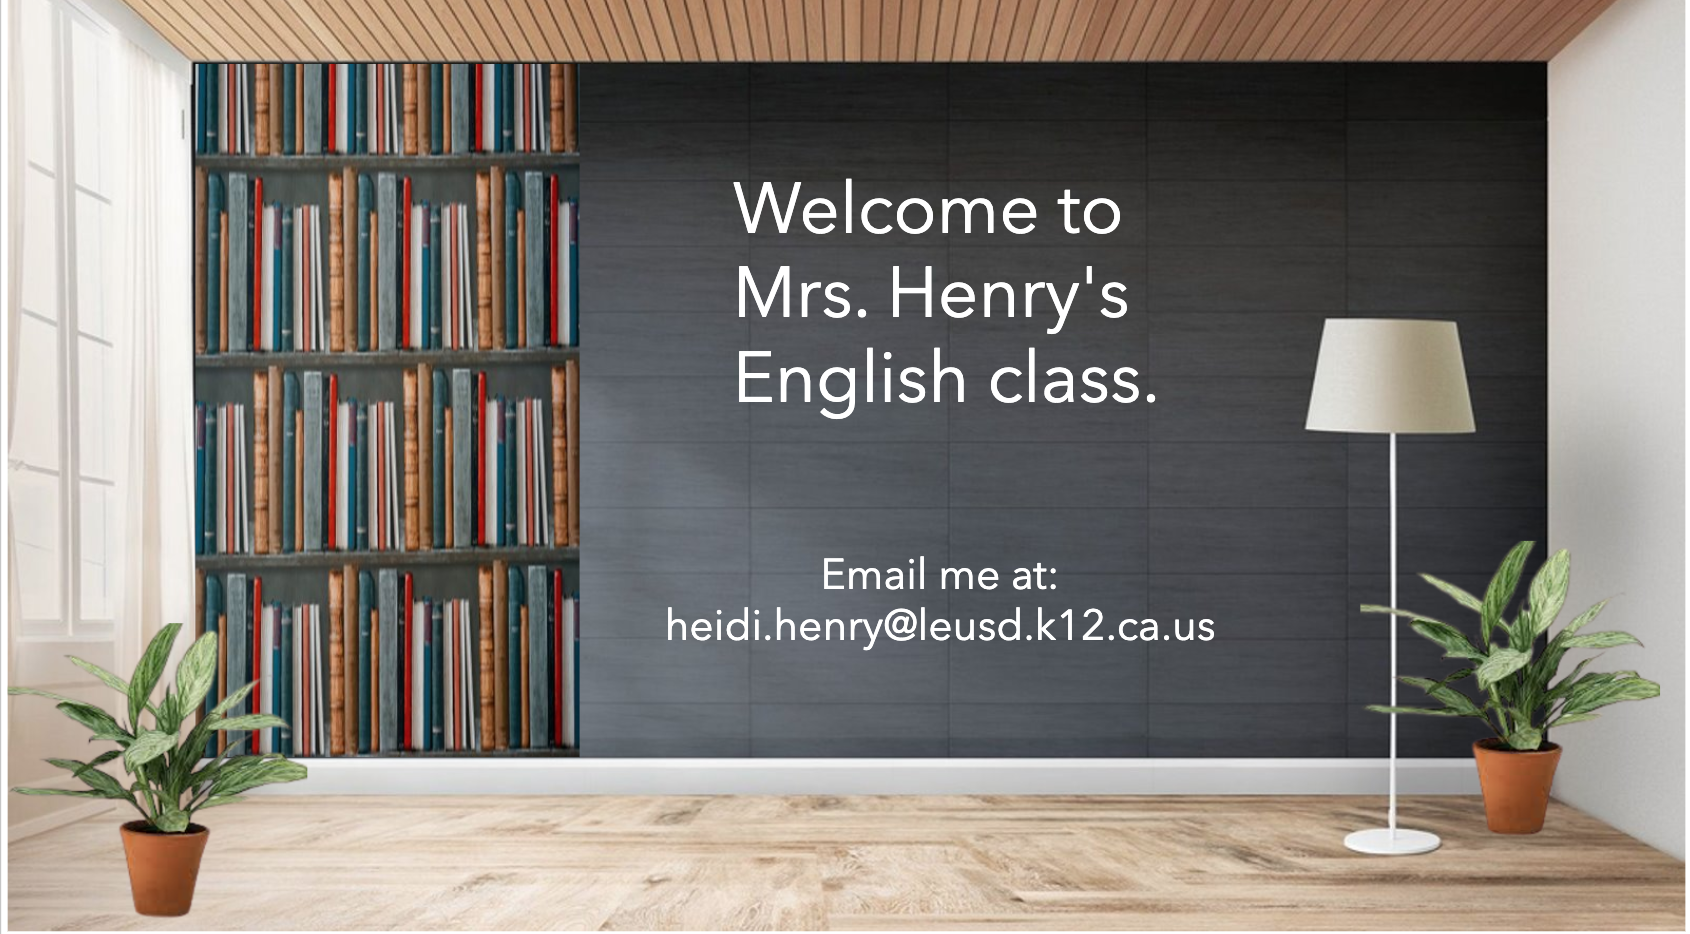 Welcome to Mrs. Henry's English class.